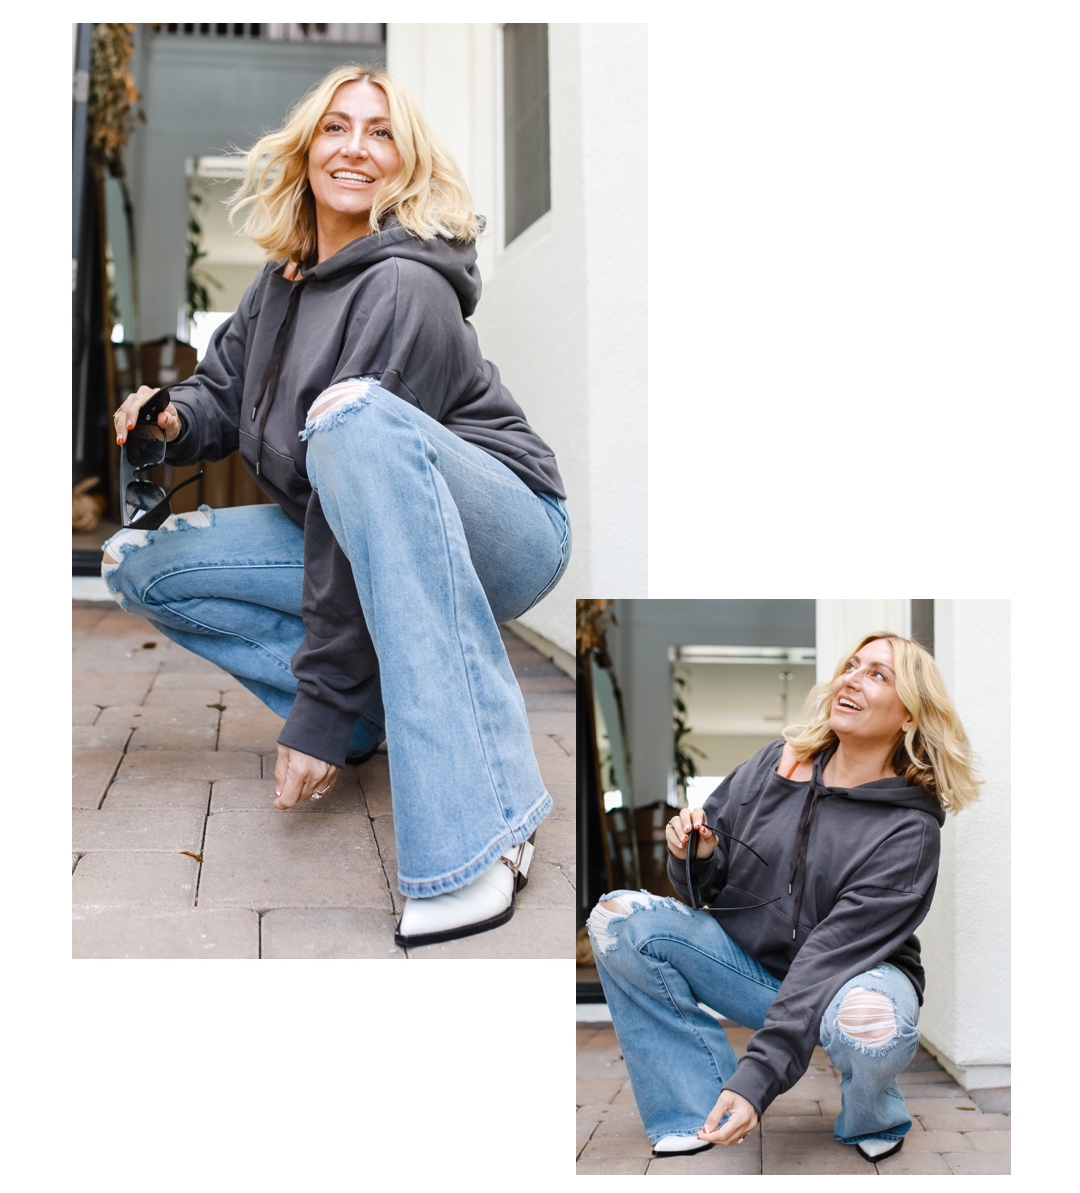 woman squatting in jeans